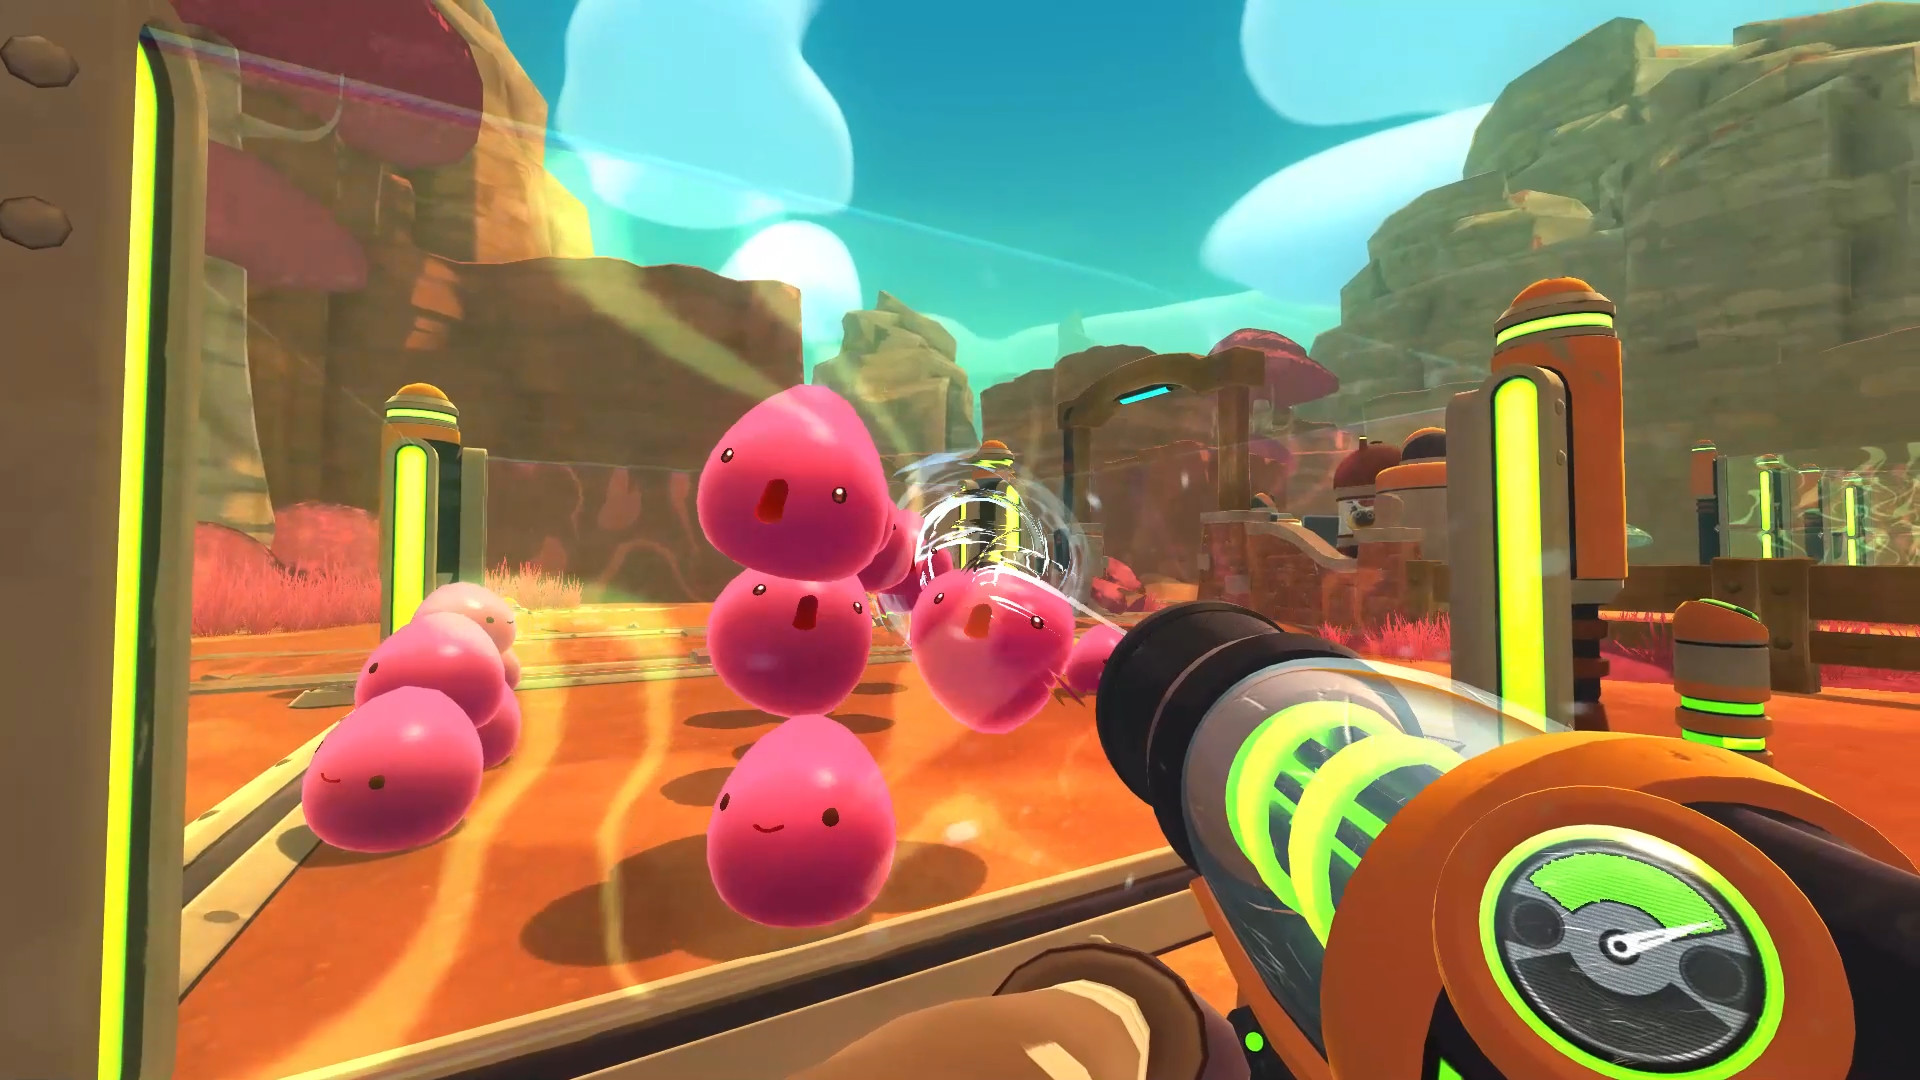 Find the best laptop for Slime Rancher